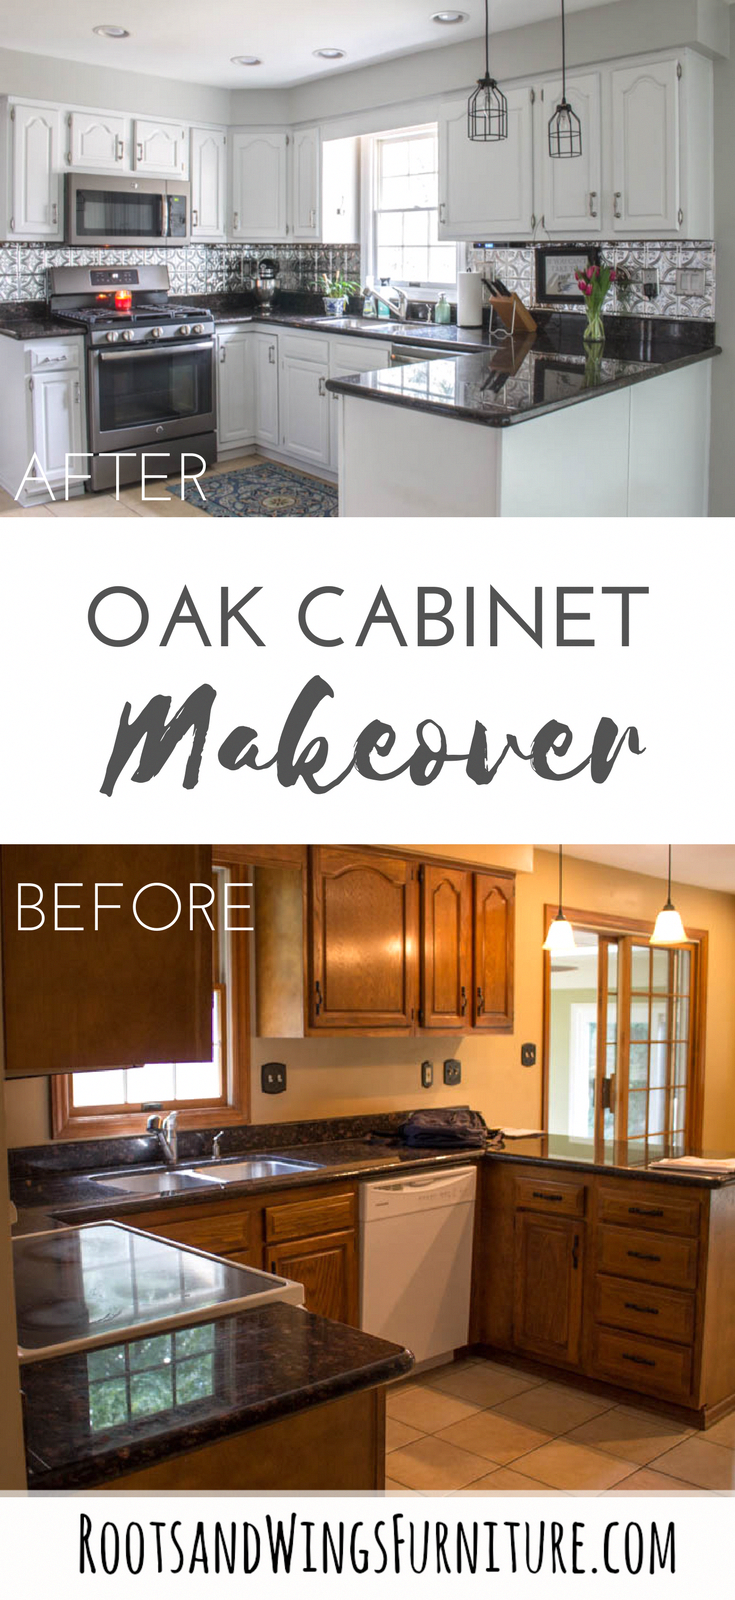 How to paint oak kitchen cabinets white without bleed through the